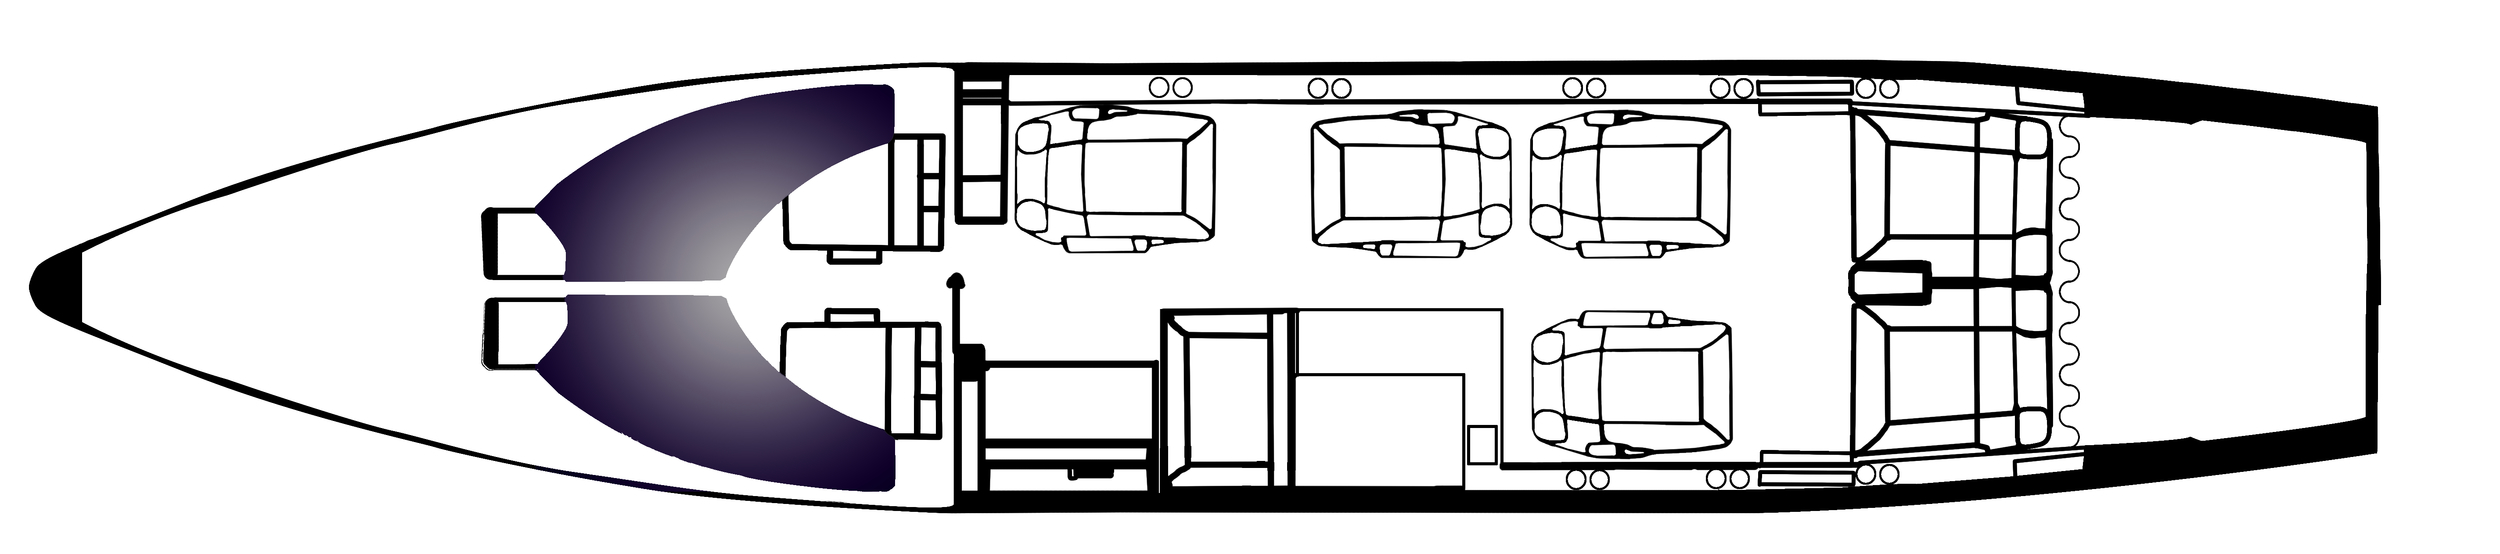 N155AM floor plan.jpg